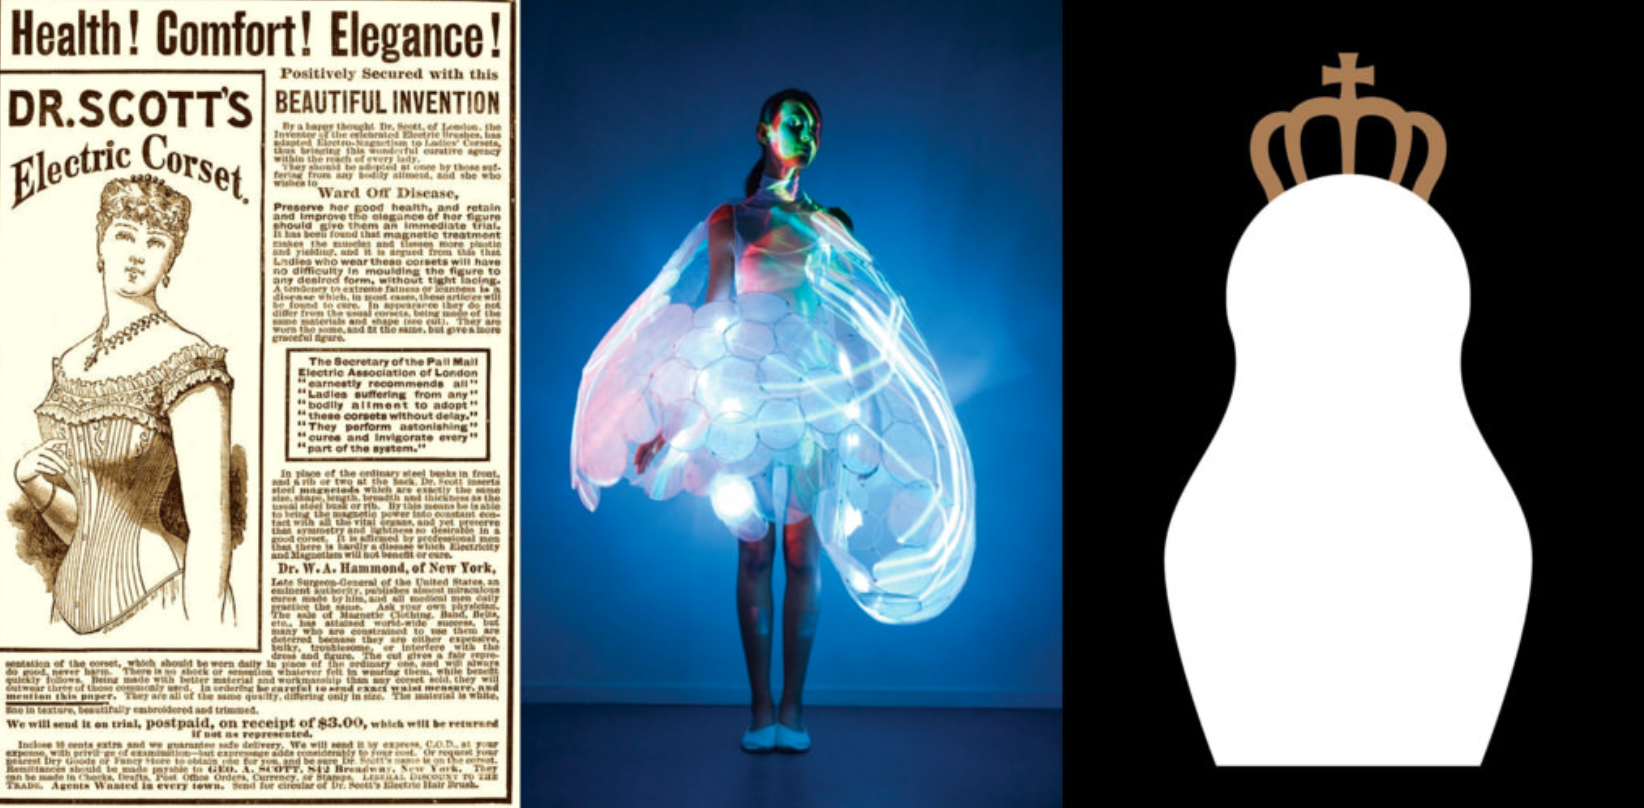 Image credits: An advertising of 'Electric Corset' by Dr. Scott; Bubelle e-dress by Philips Design